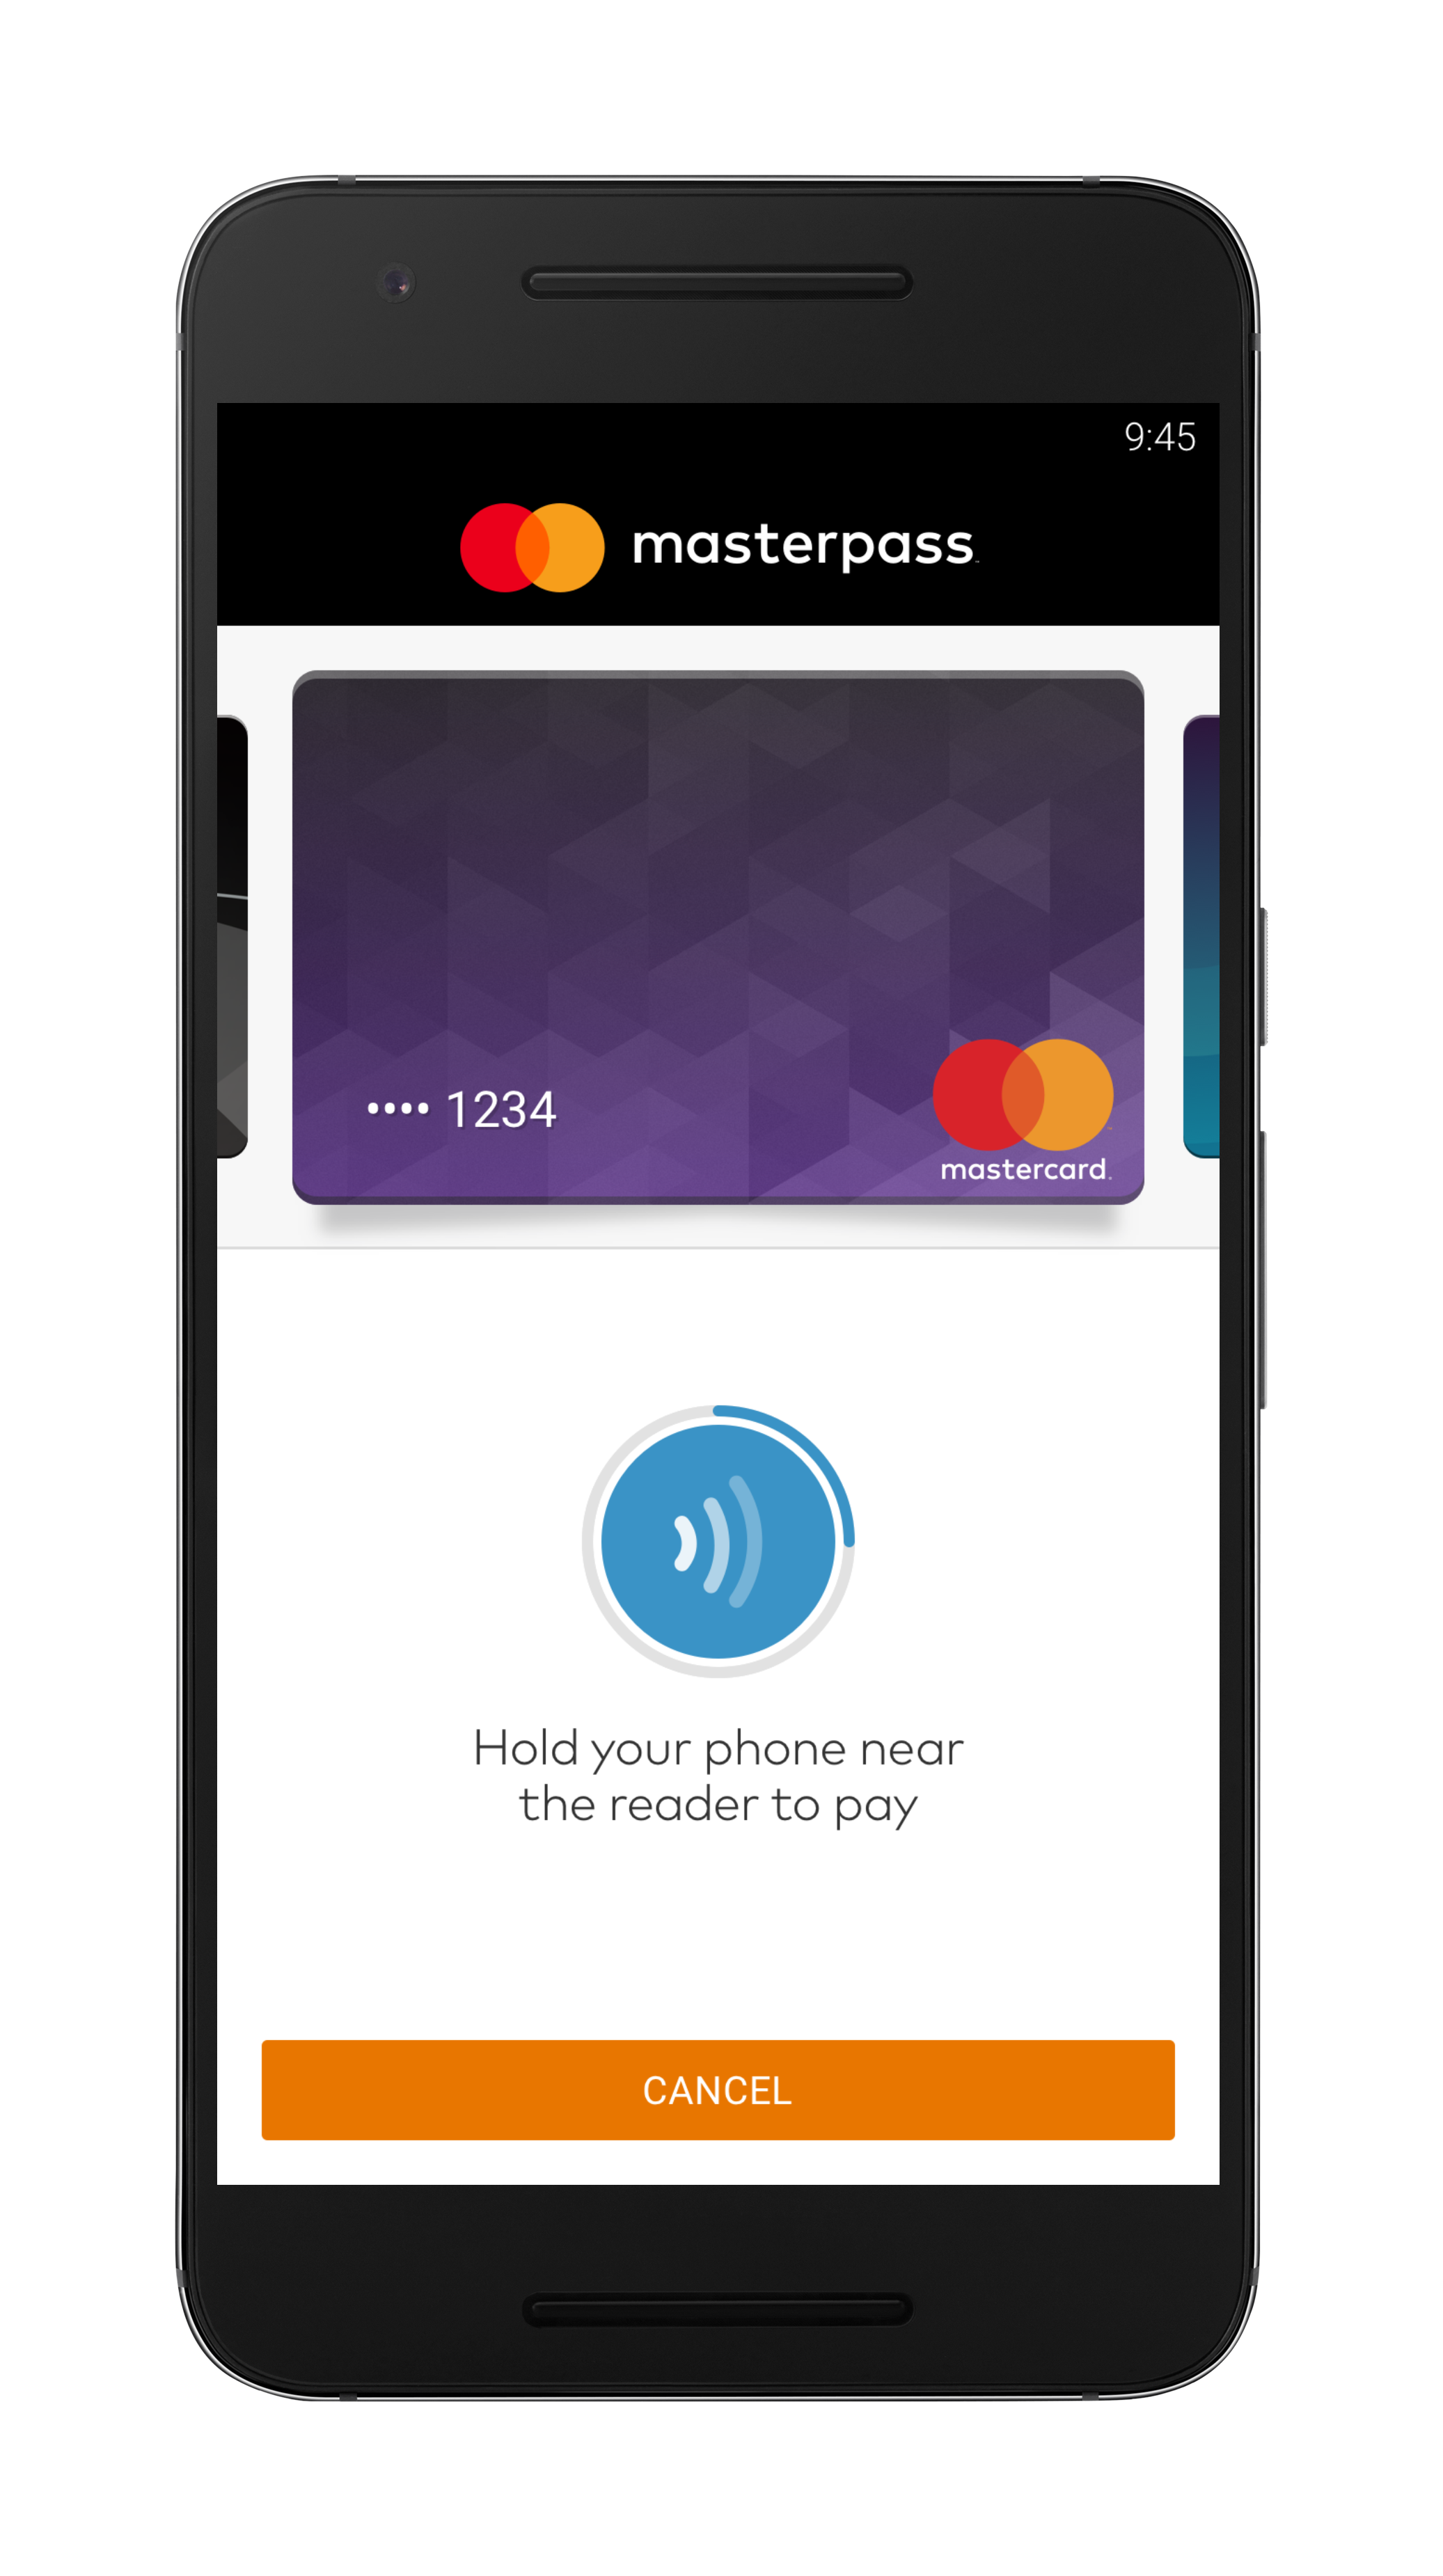 Mastercard expands digital payment service for in-store contactless